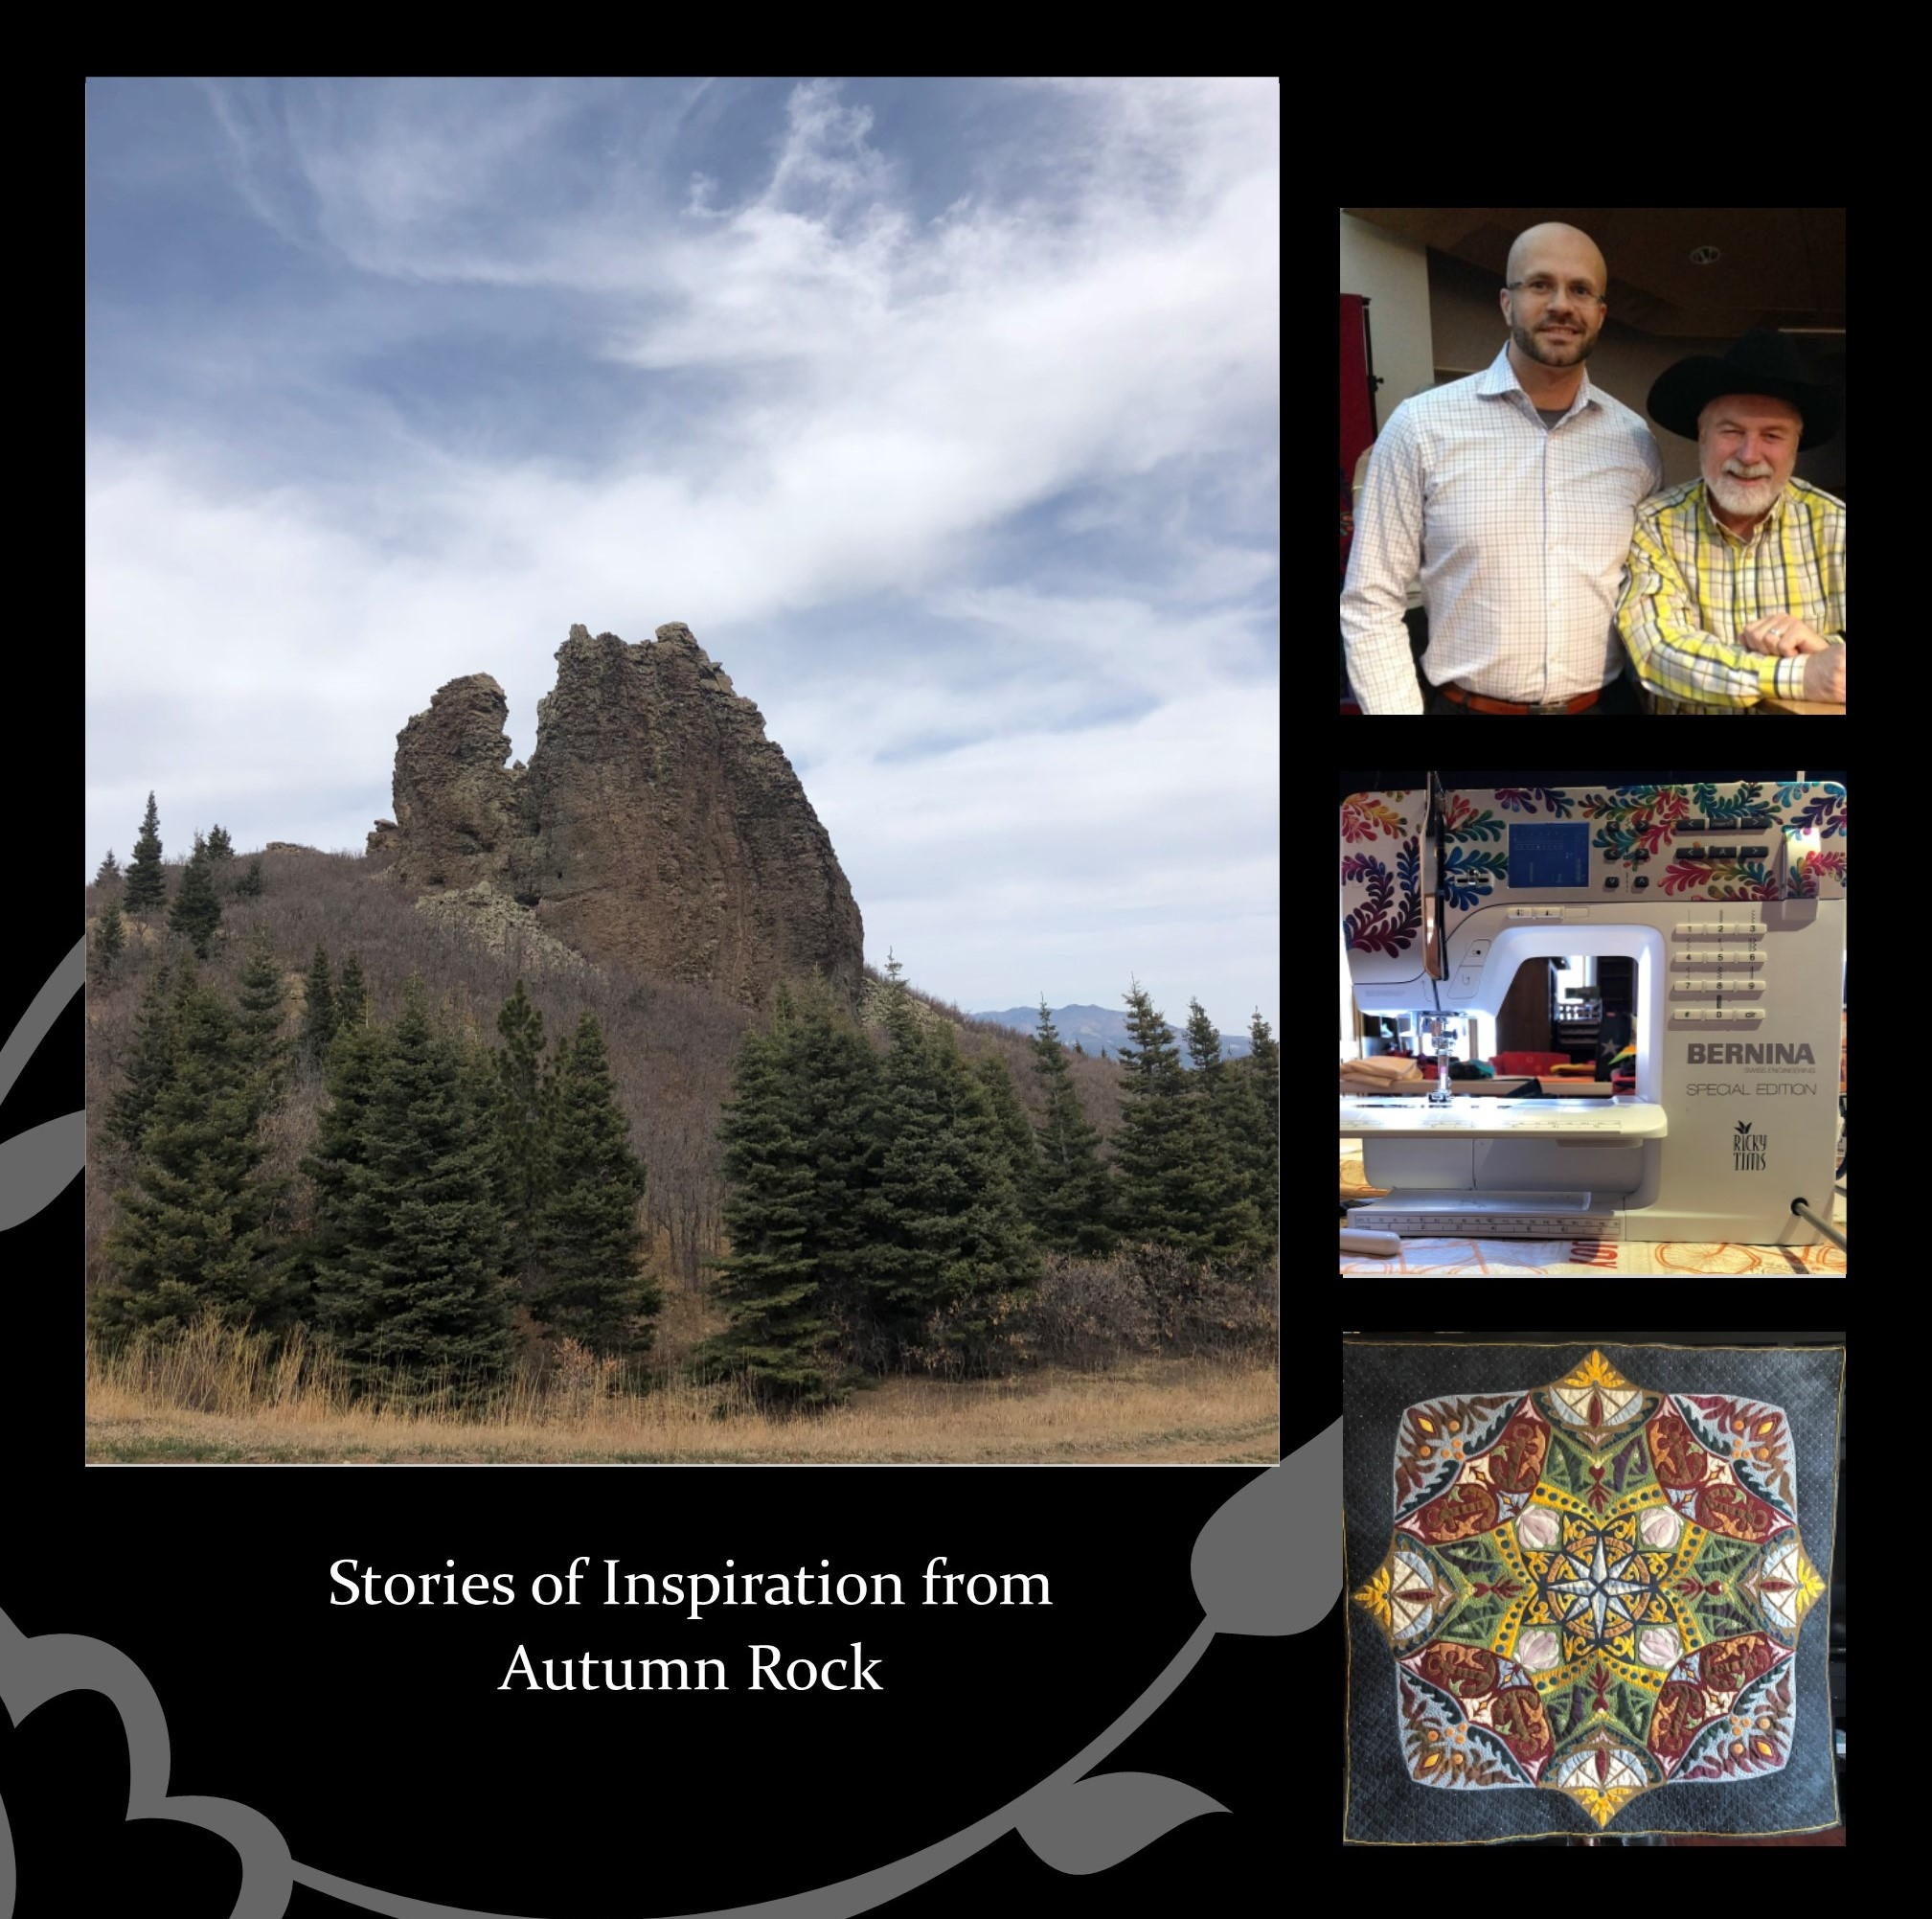 LCR.4,11am - Stories of Inspiration at Autumn Rock - DAYTIME LECTURE